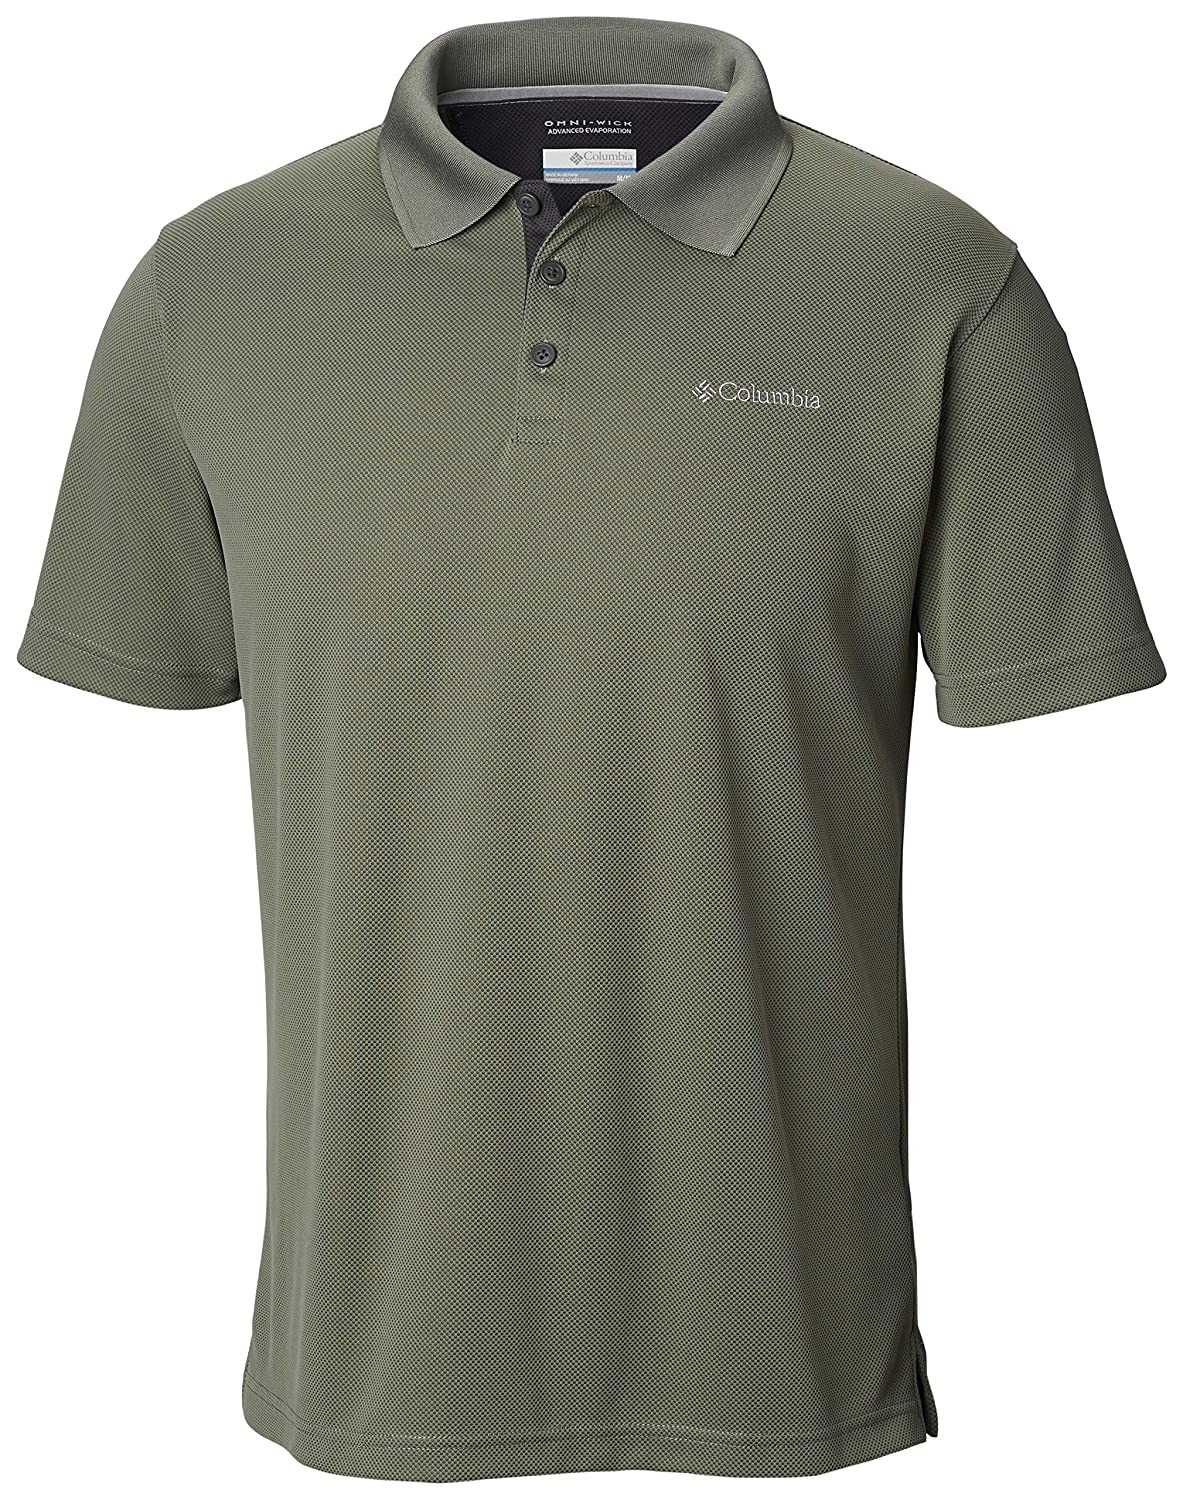 Cyprès S Columbia Homme Polo